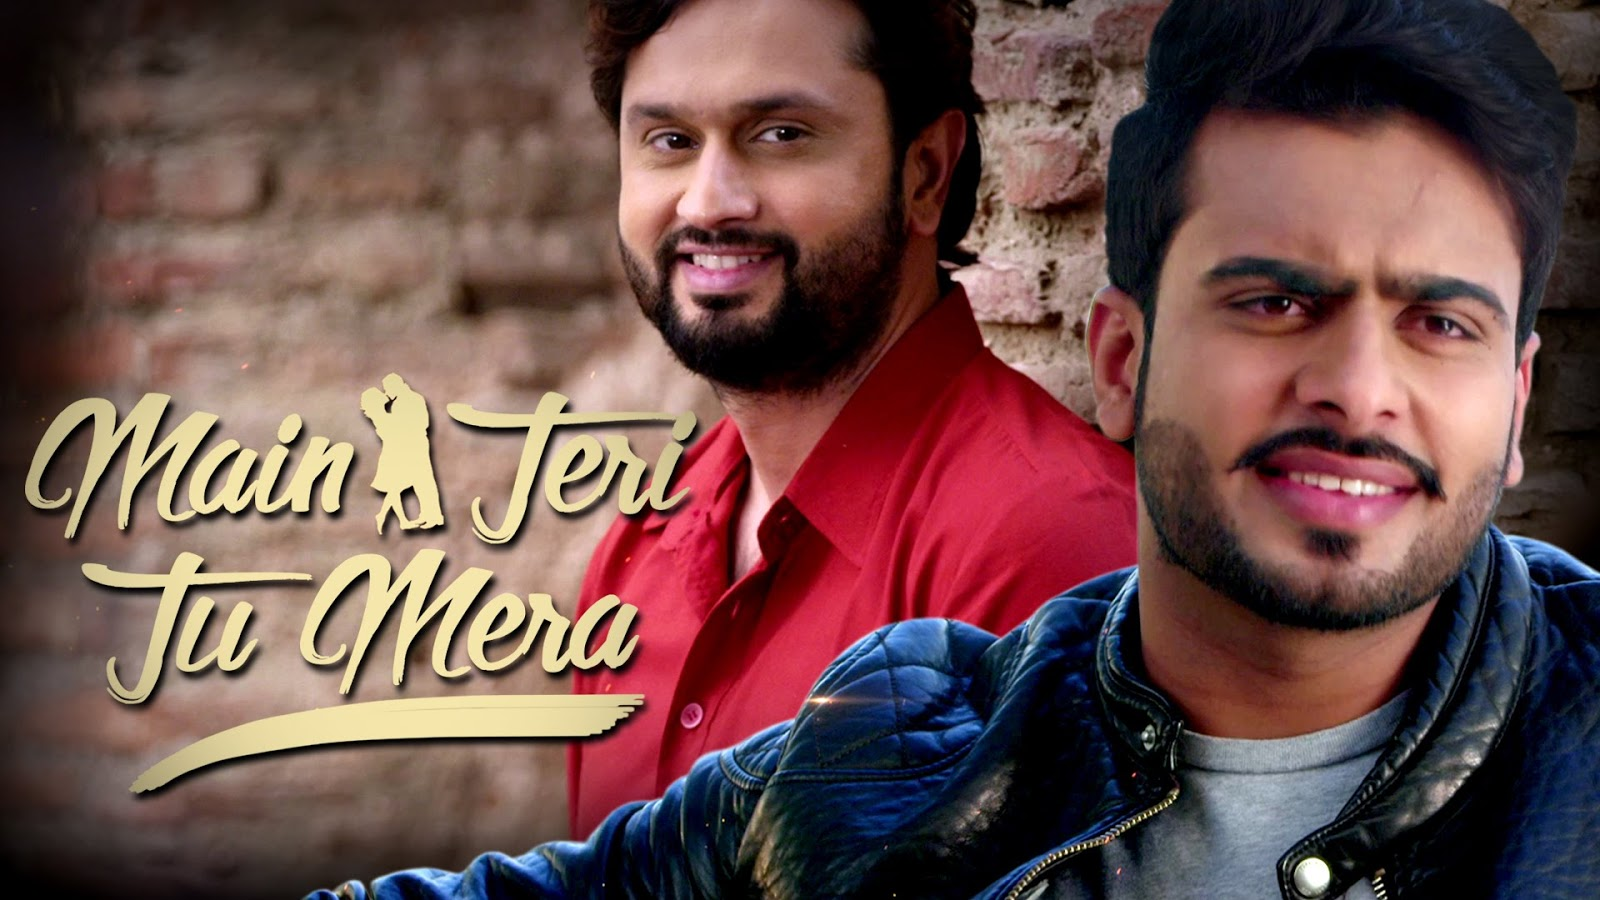 Complete cast and crew of Main Teri Tu Mera  (2016) Punjabi movie wiki, poster, Trailer, music list - Roshan Prince and Yamini Malhotra, Movie release date 19 August 2016